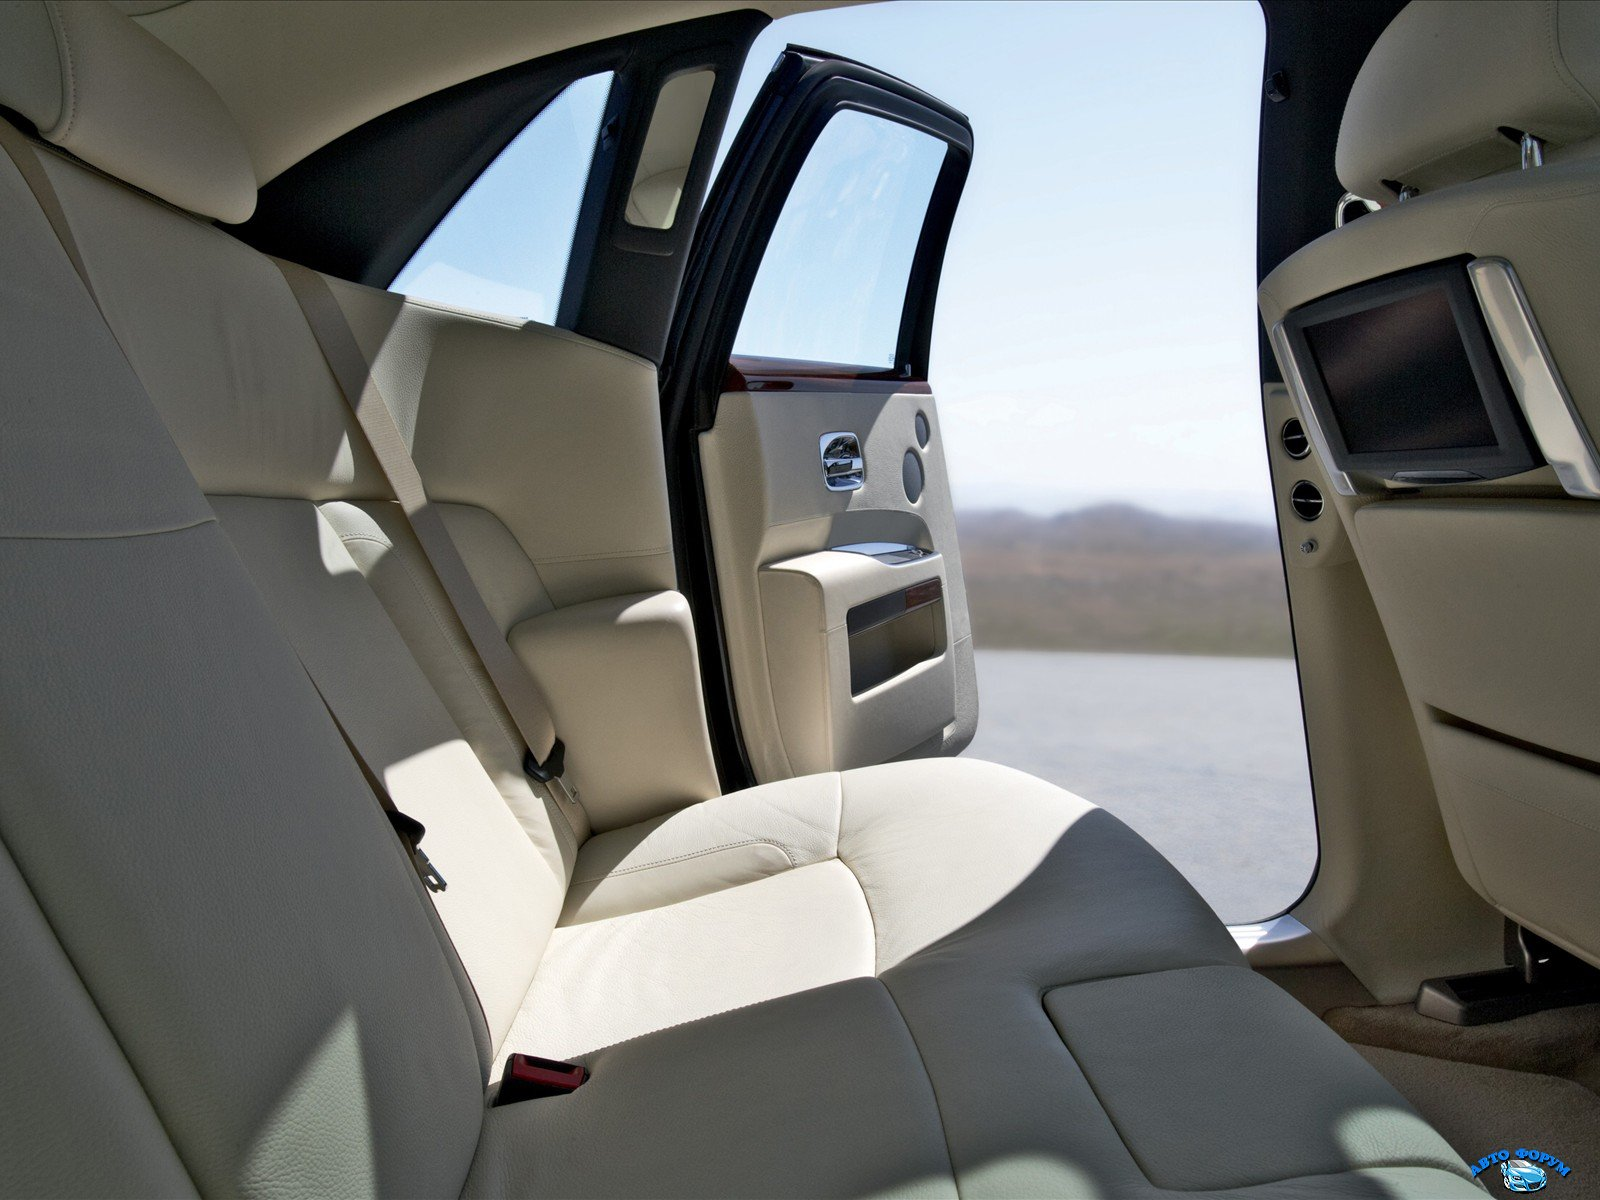 rolls-royce_ghost_rear-seats_26.jpg